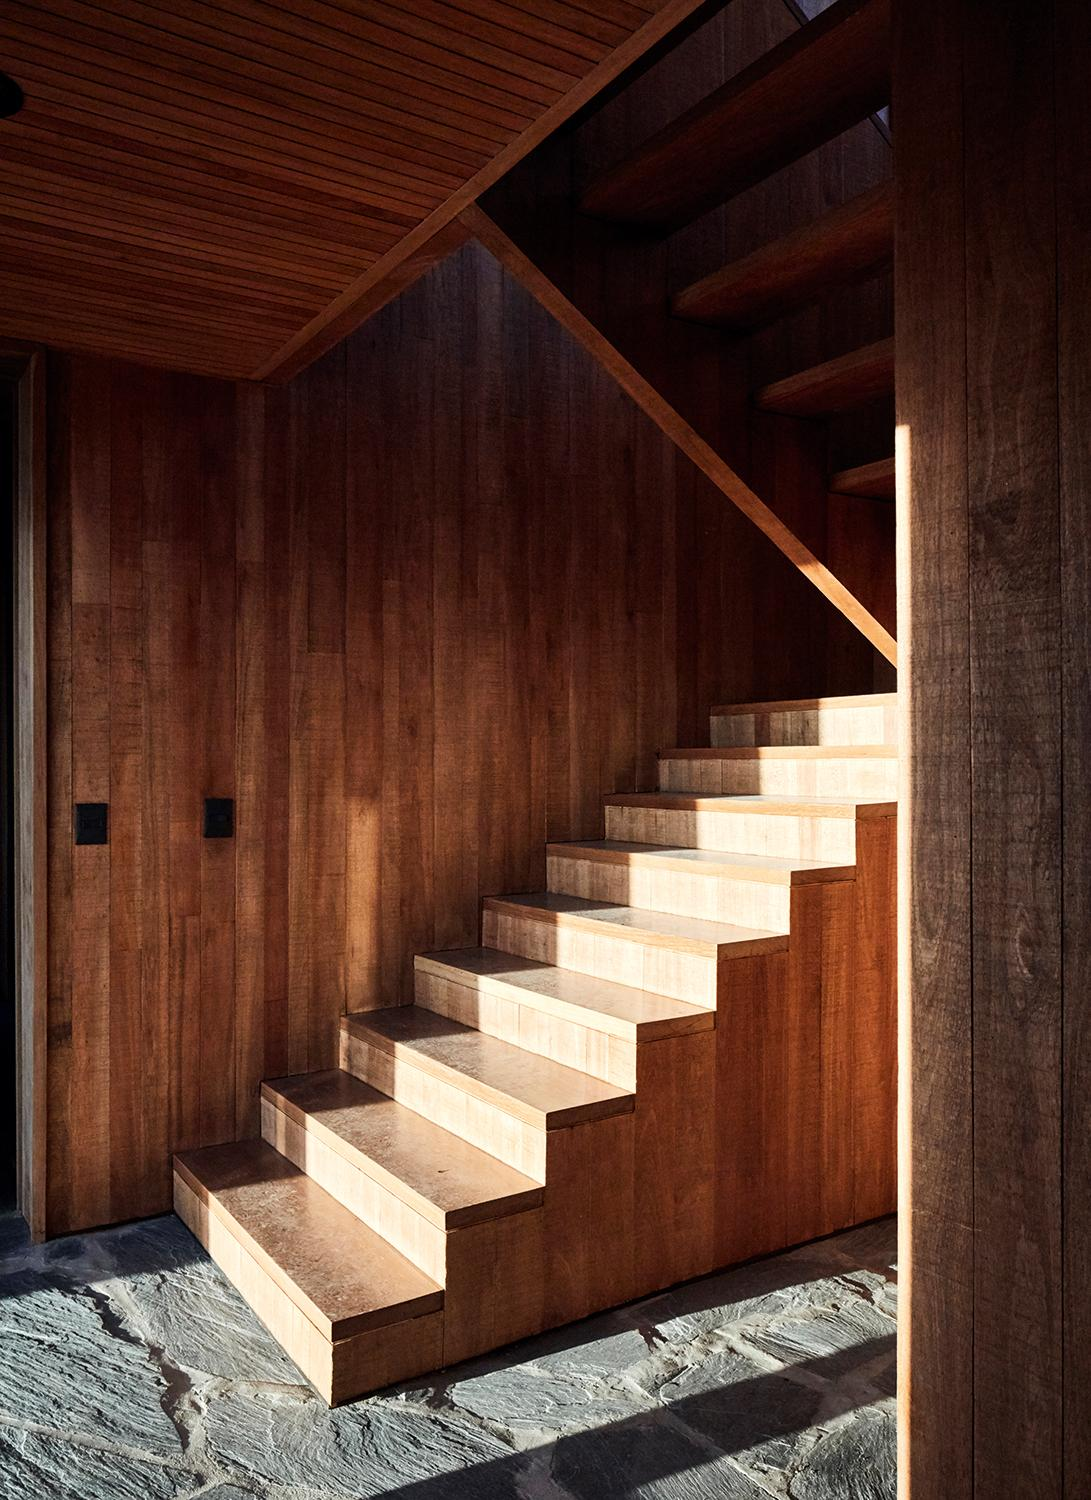 Internal wood stairs with stone flooring